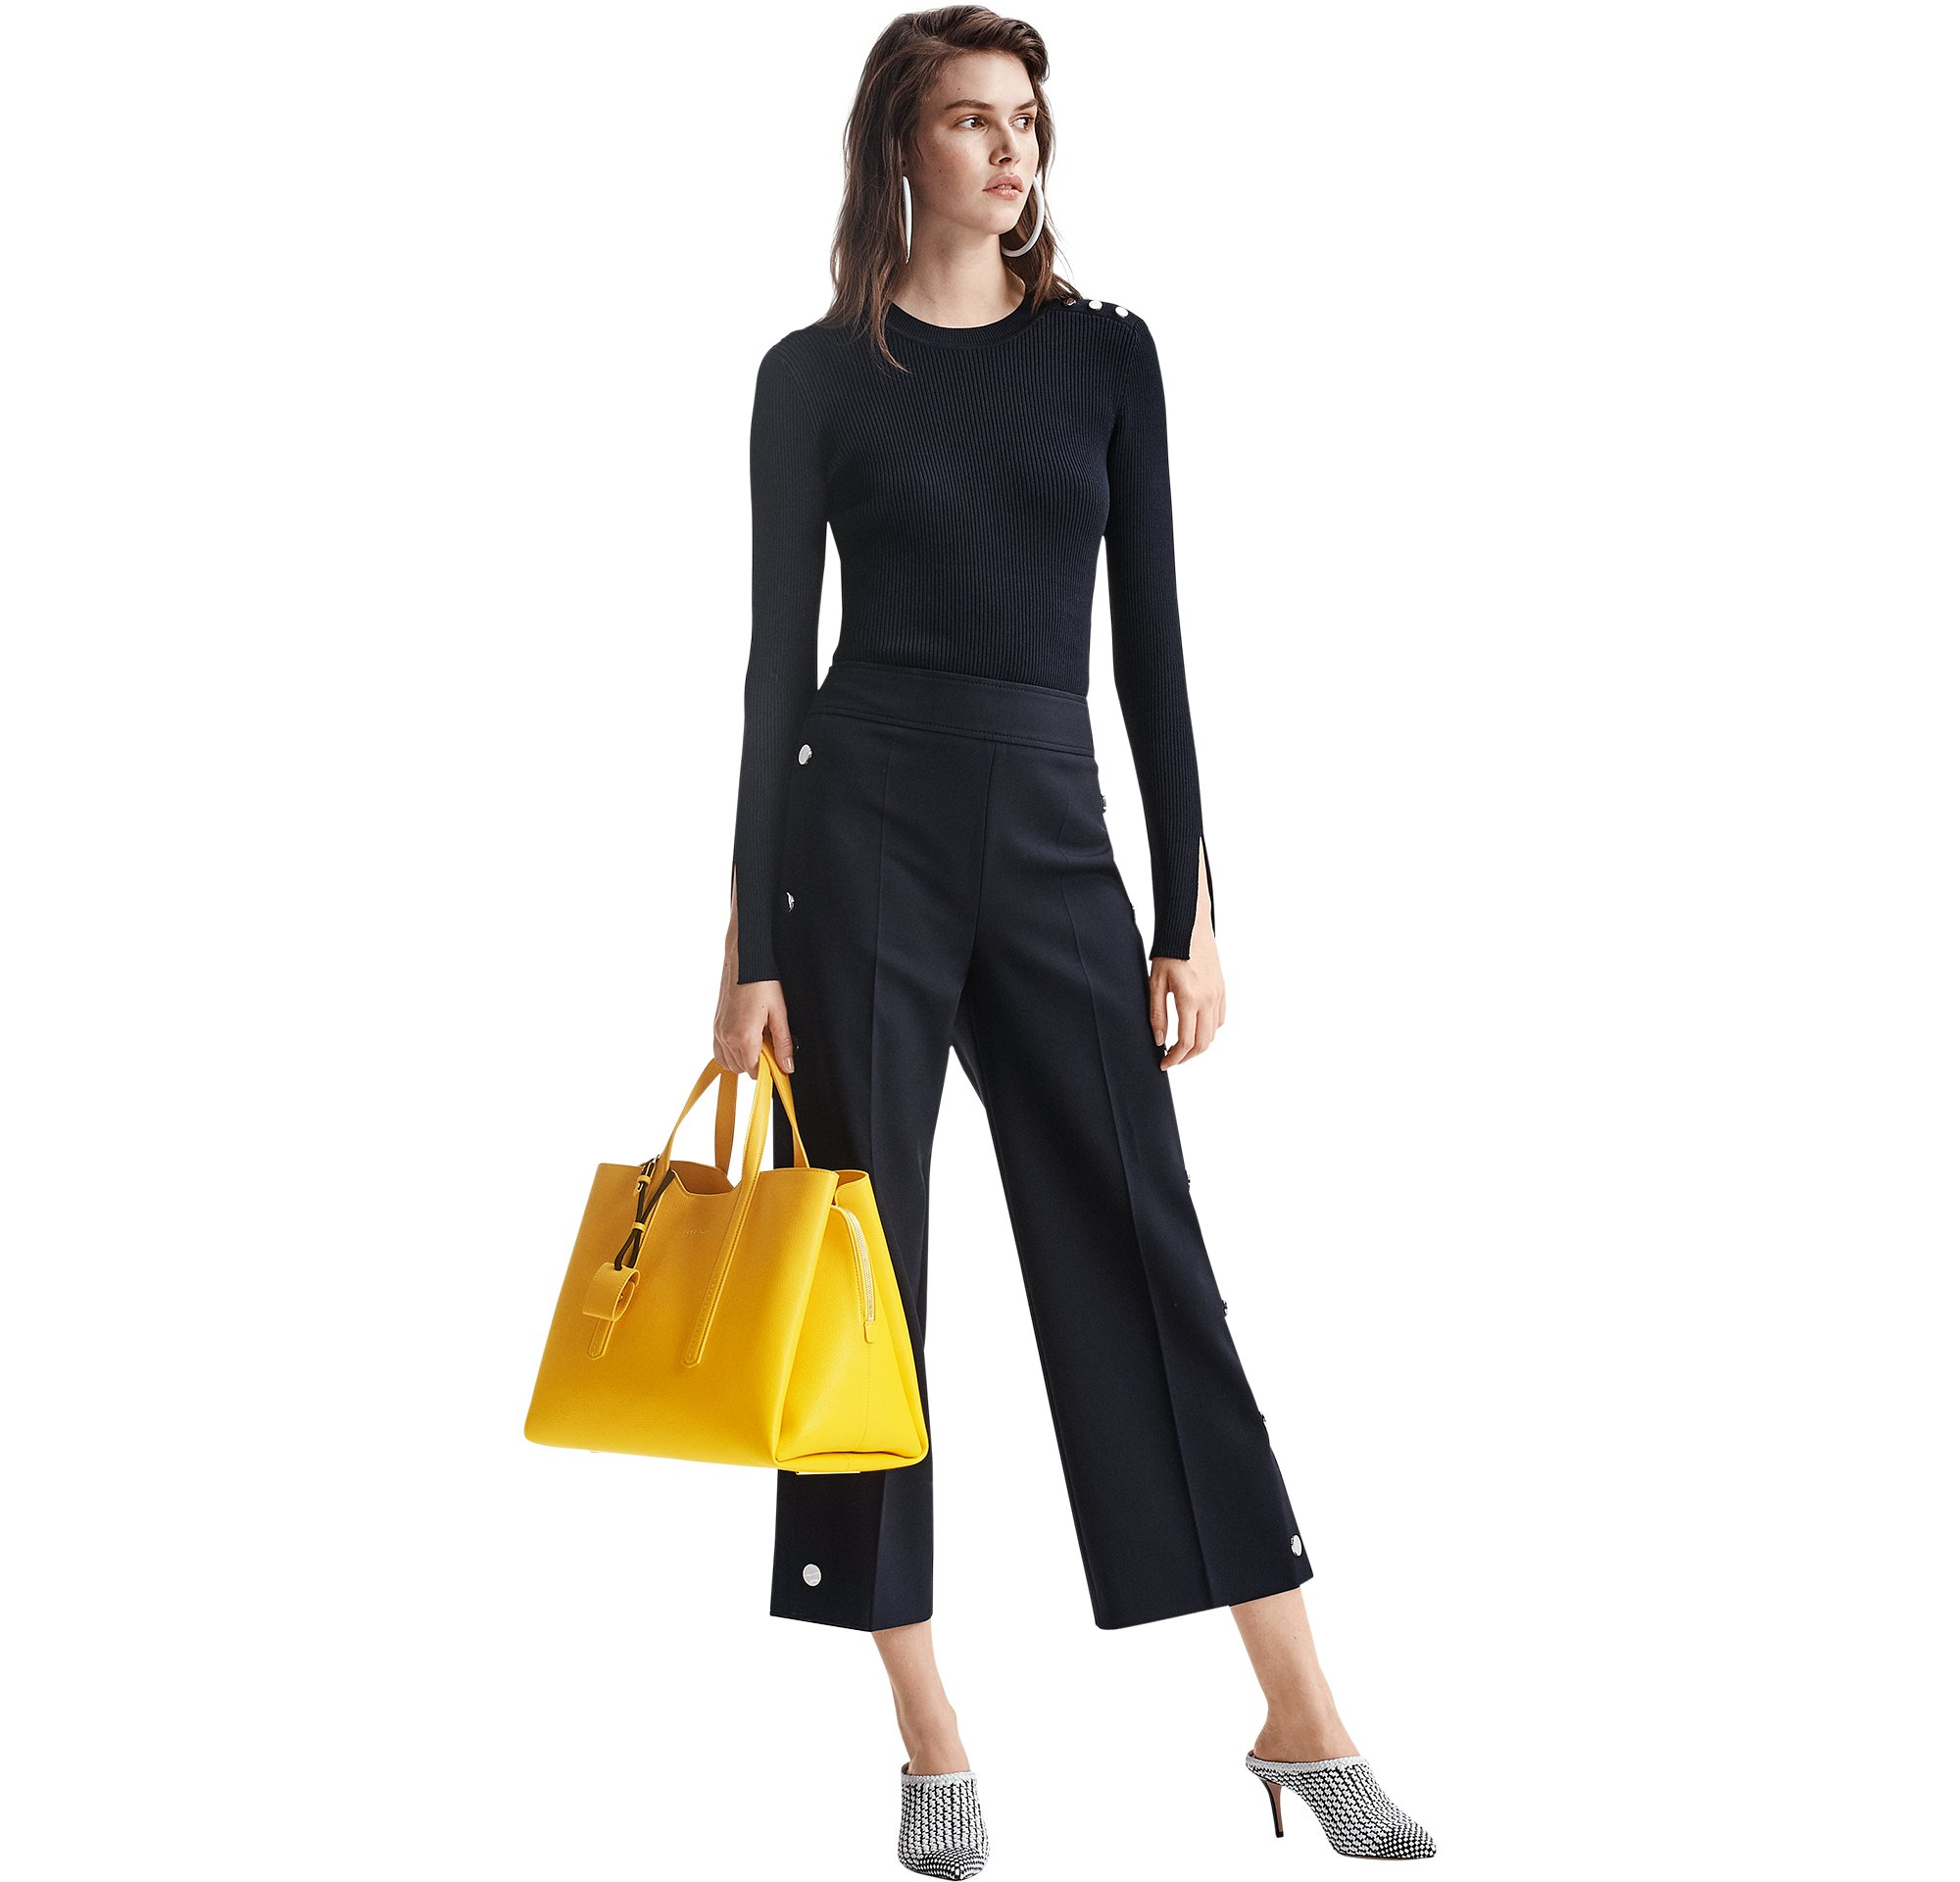 BOSS_Women_SR18_Look_8,